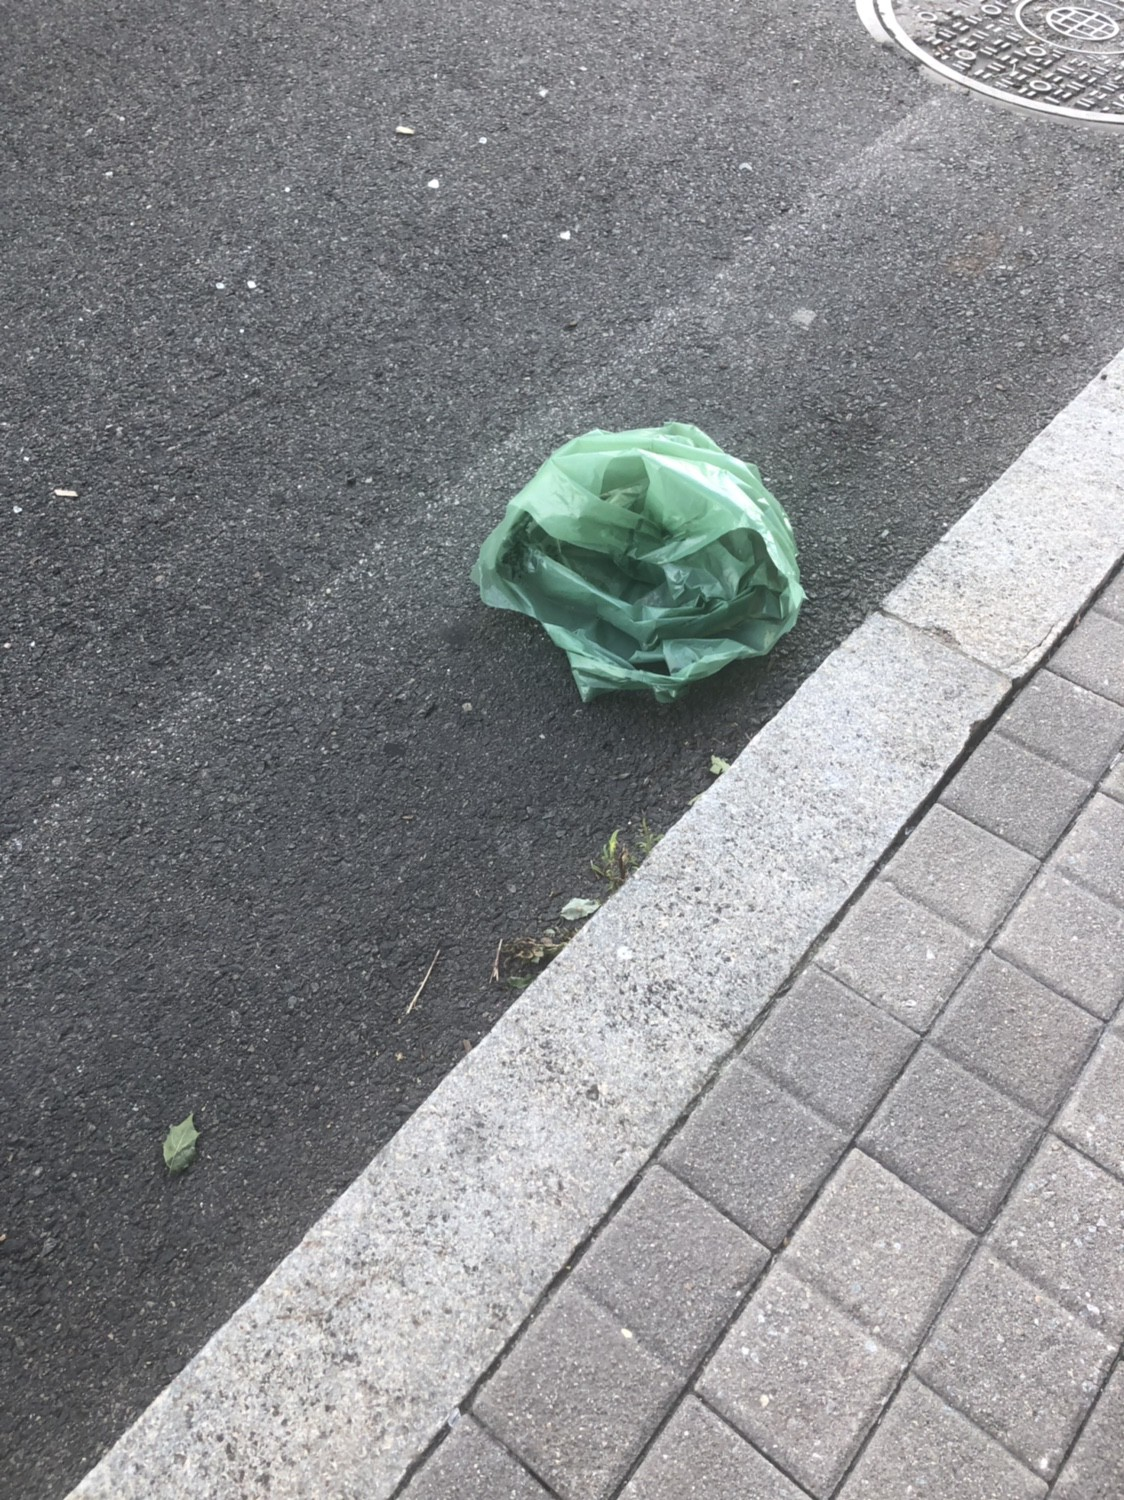 """A """"reusable"""" plastic bag flies on the streets the day after they are introduced for the bag """"ban"""""""